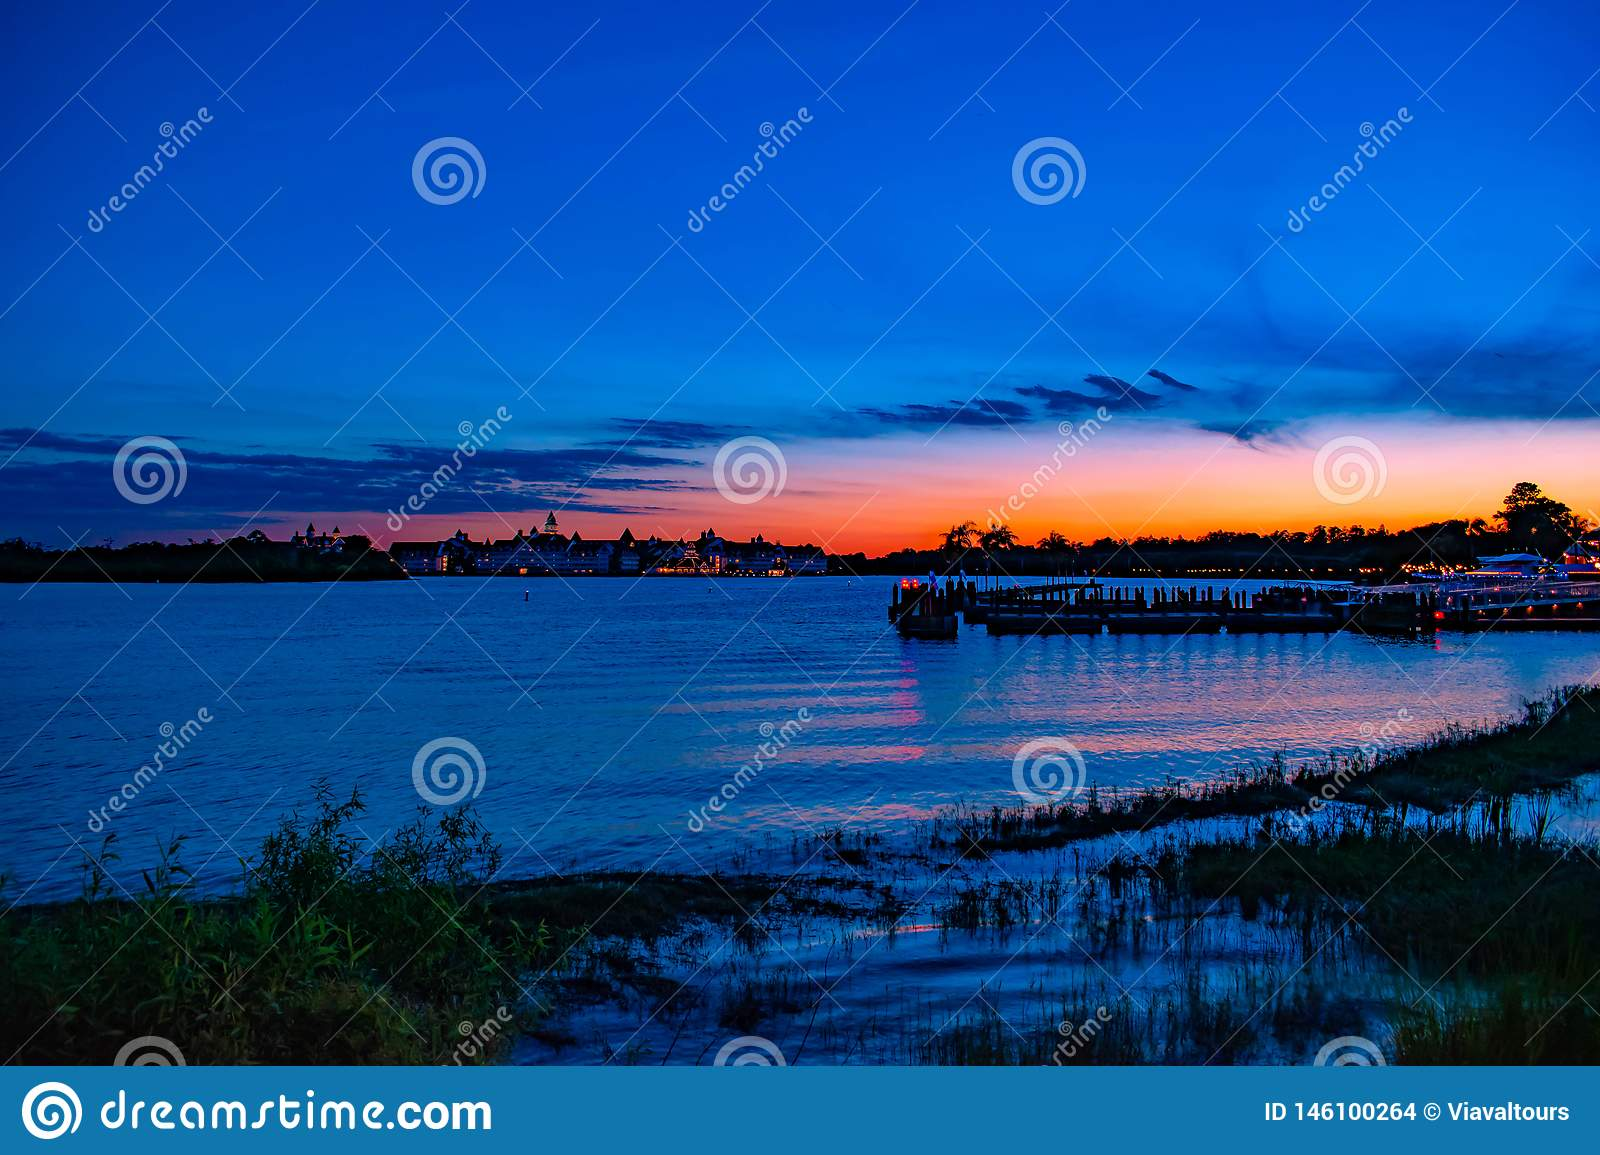 Panoramic view of Grand Floridian Resort & Spa and Magic Kingdom wharf on colorful sunset background at Walt Disney World area 6